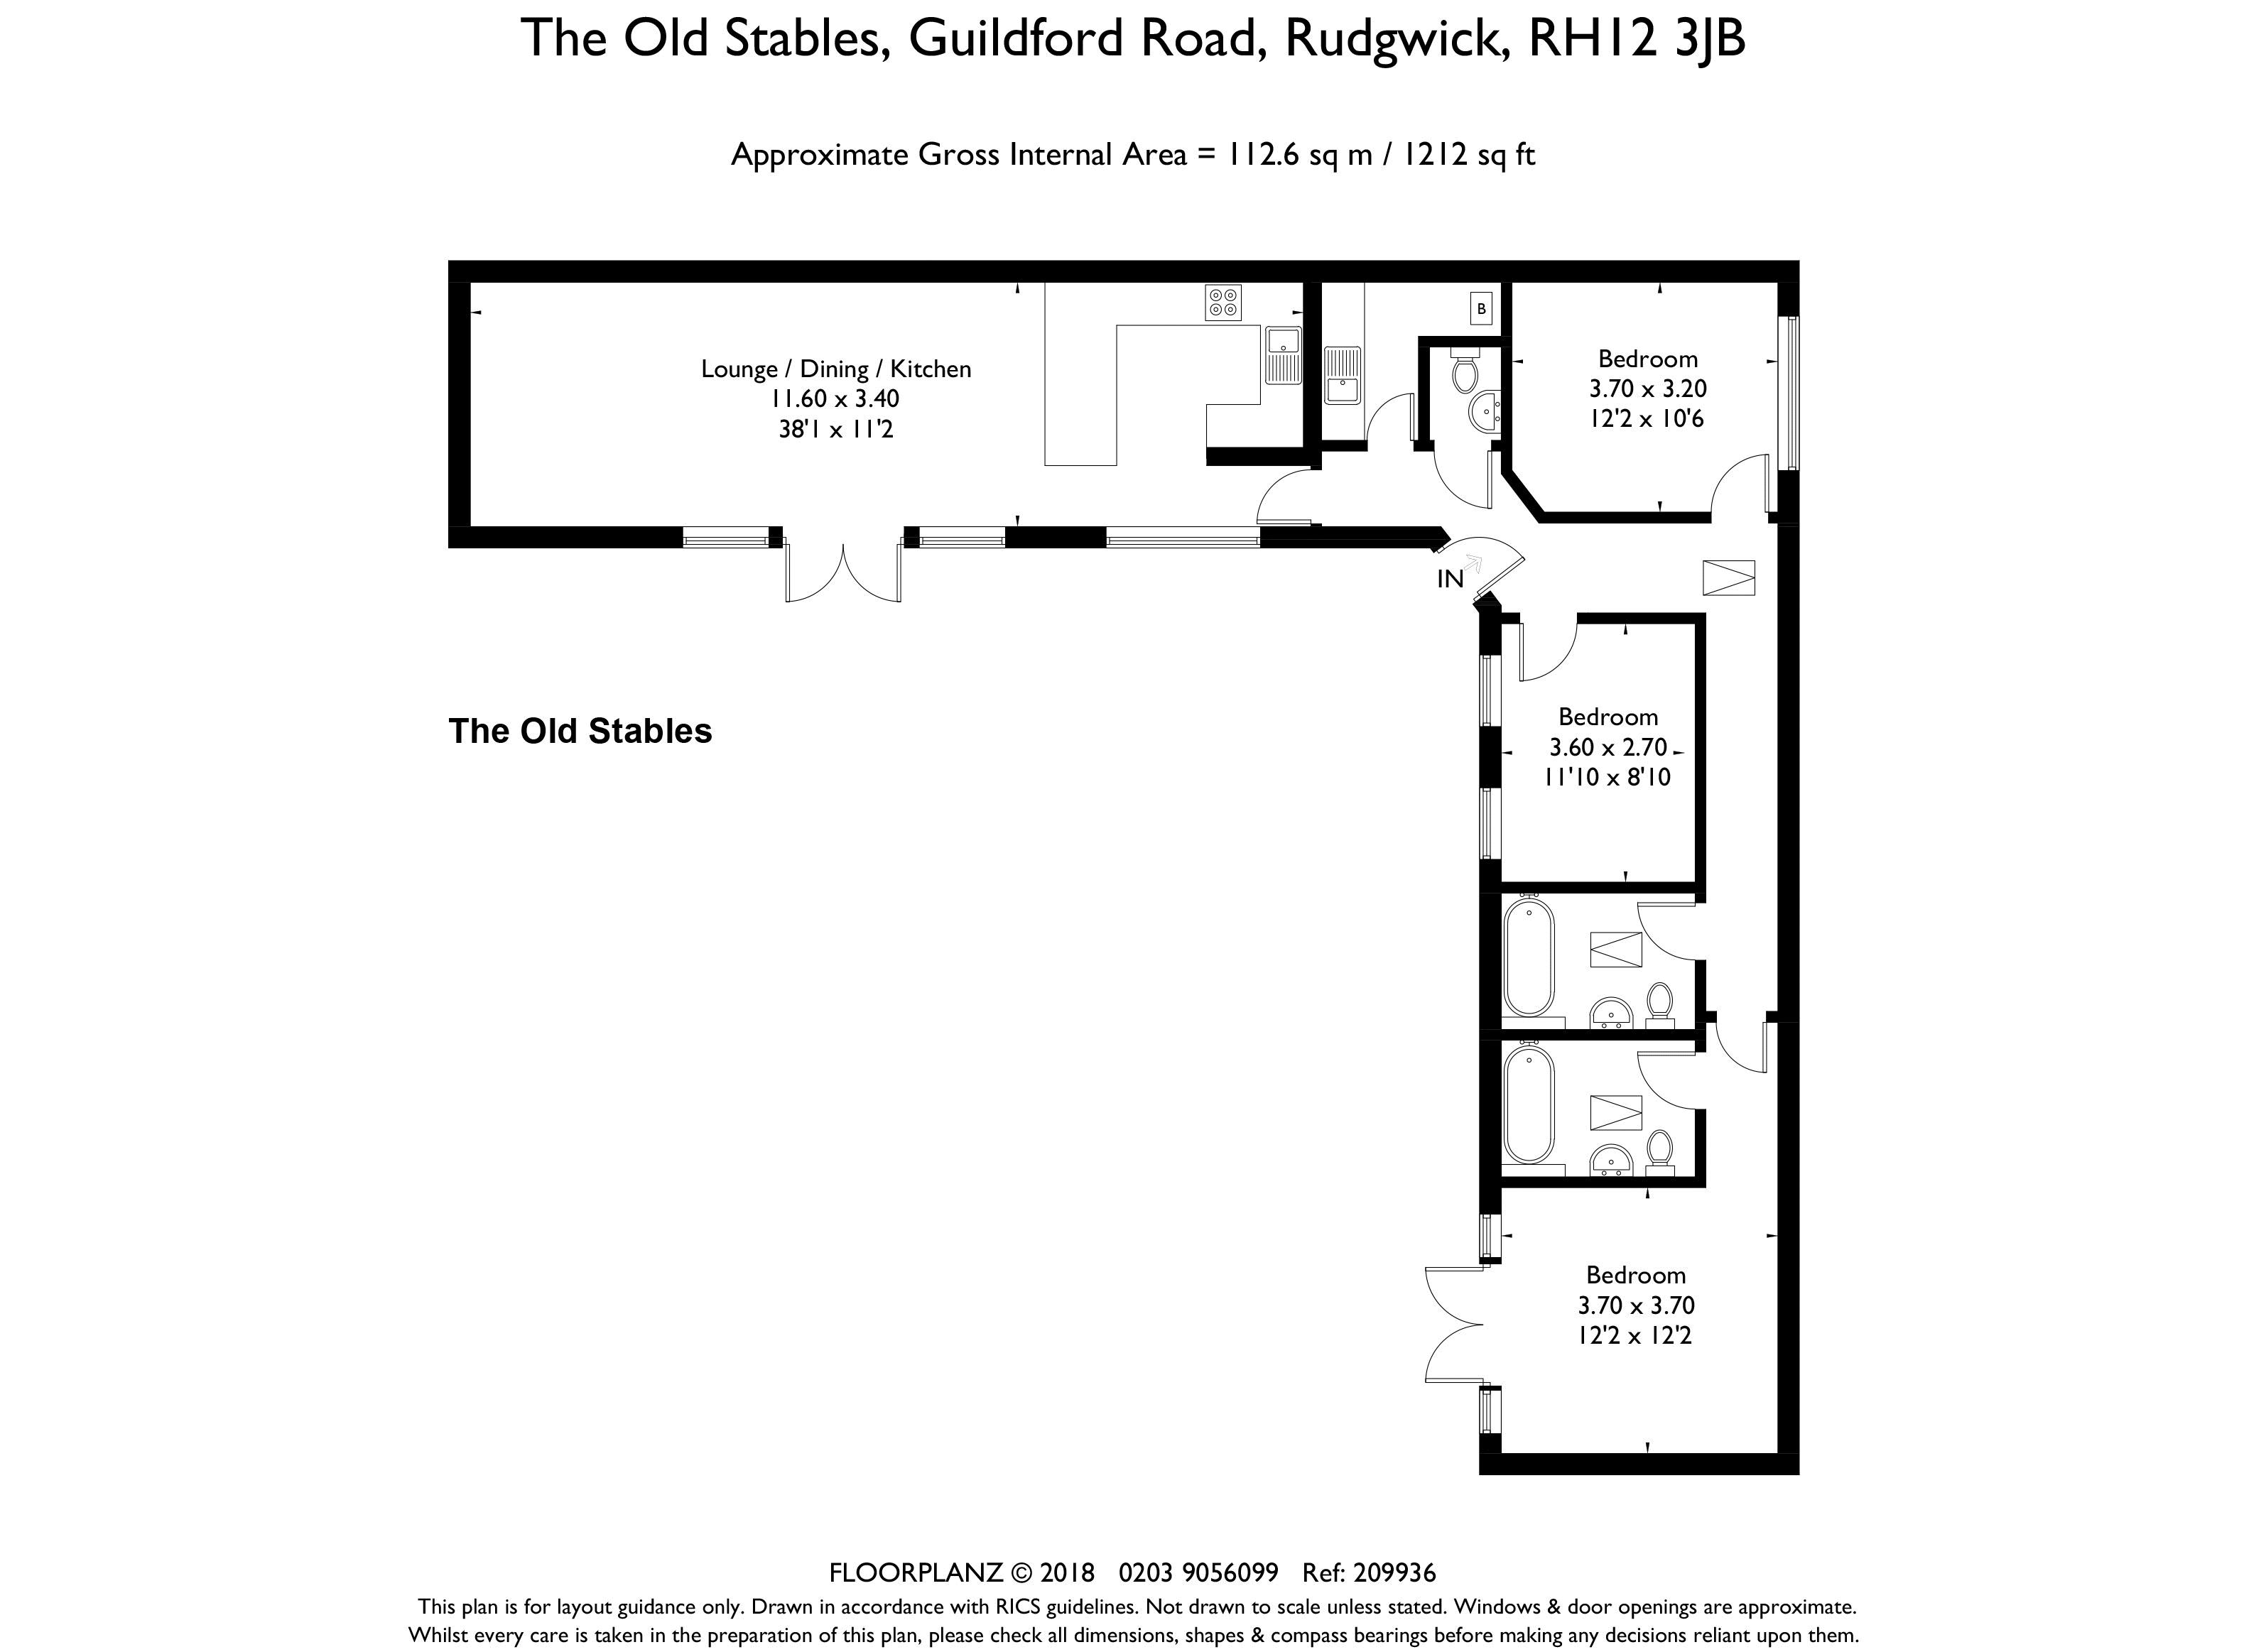 The Old Stables Floorplan